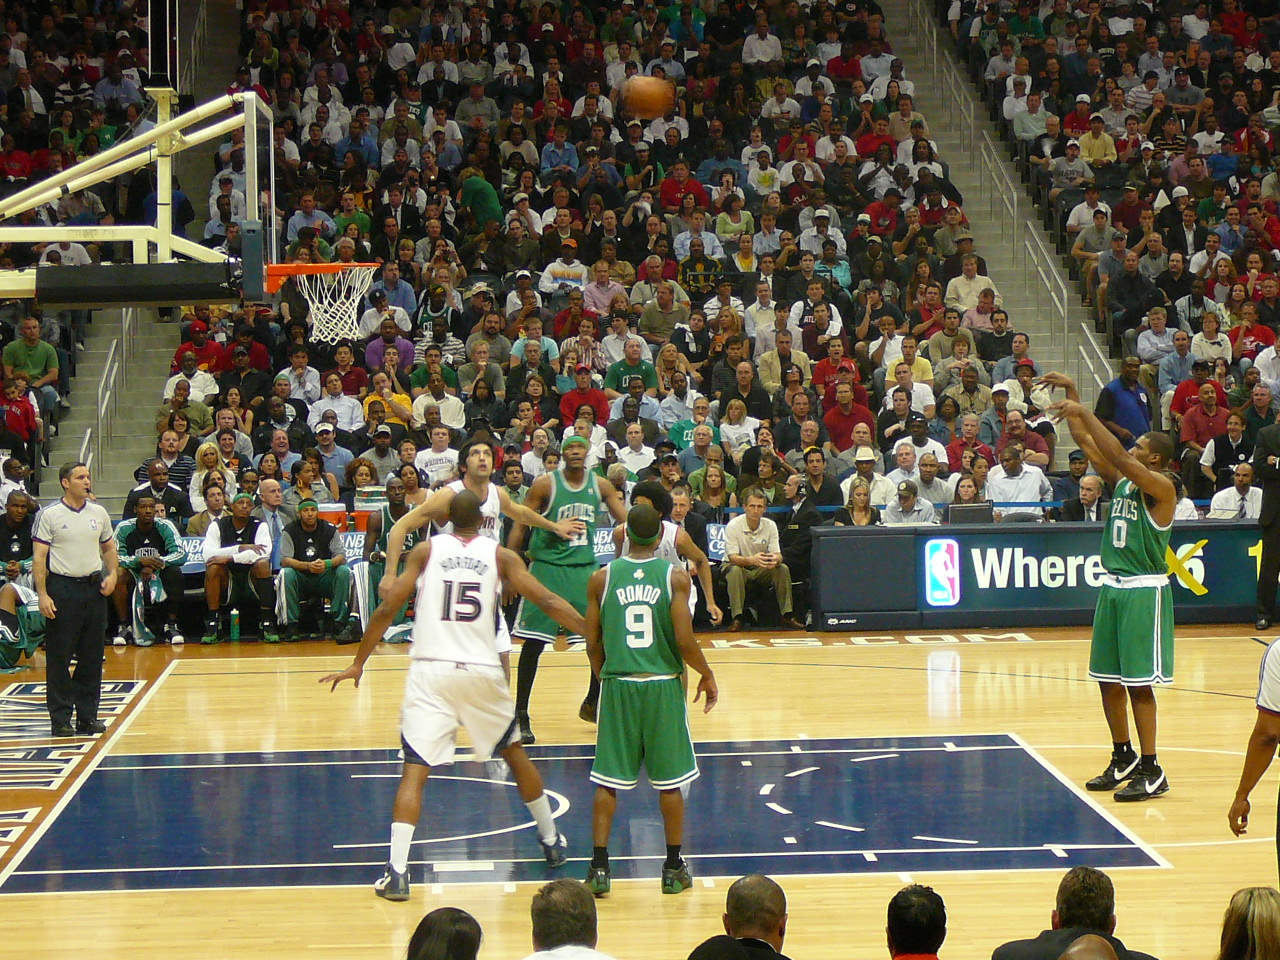 Leon Powe making a free throw for the Boston Celtics in an NBA game.